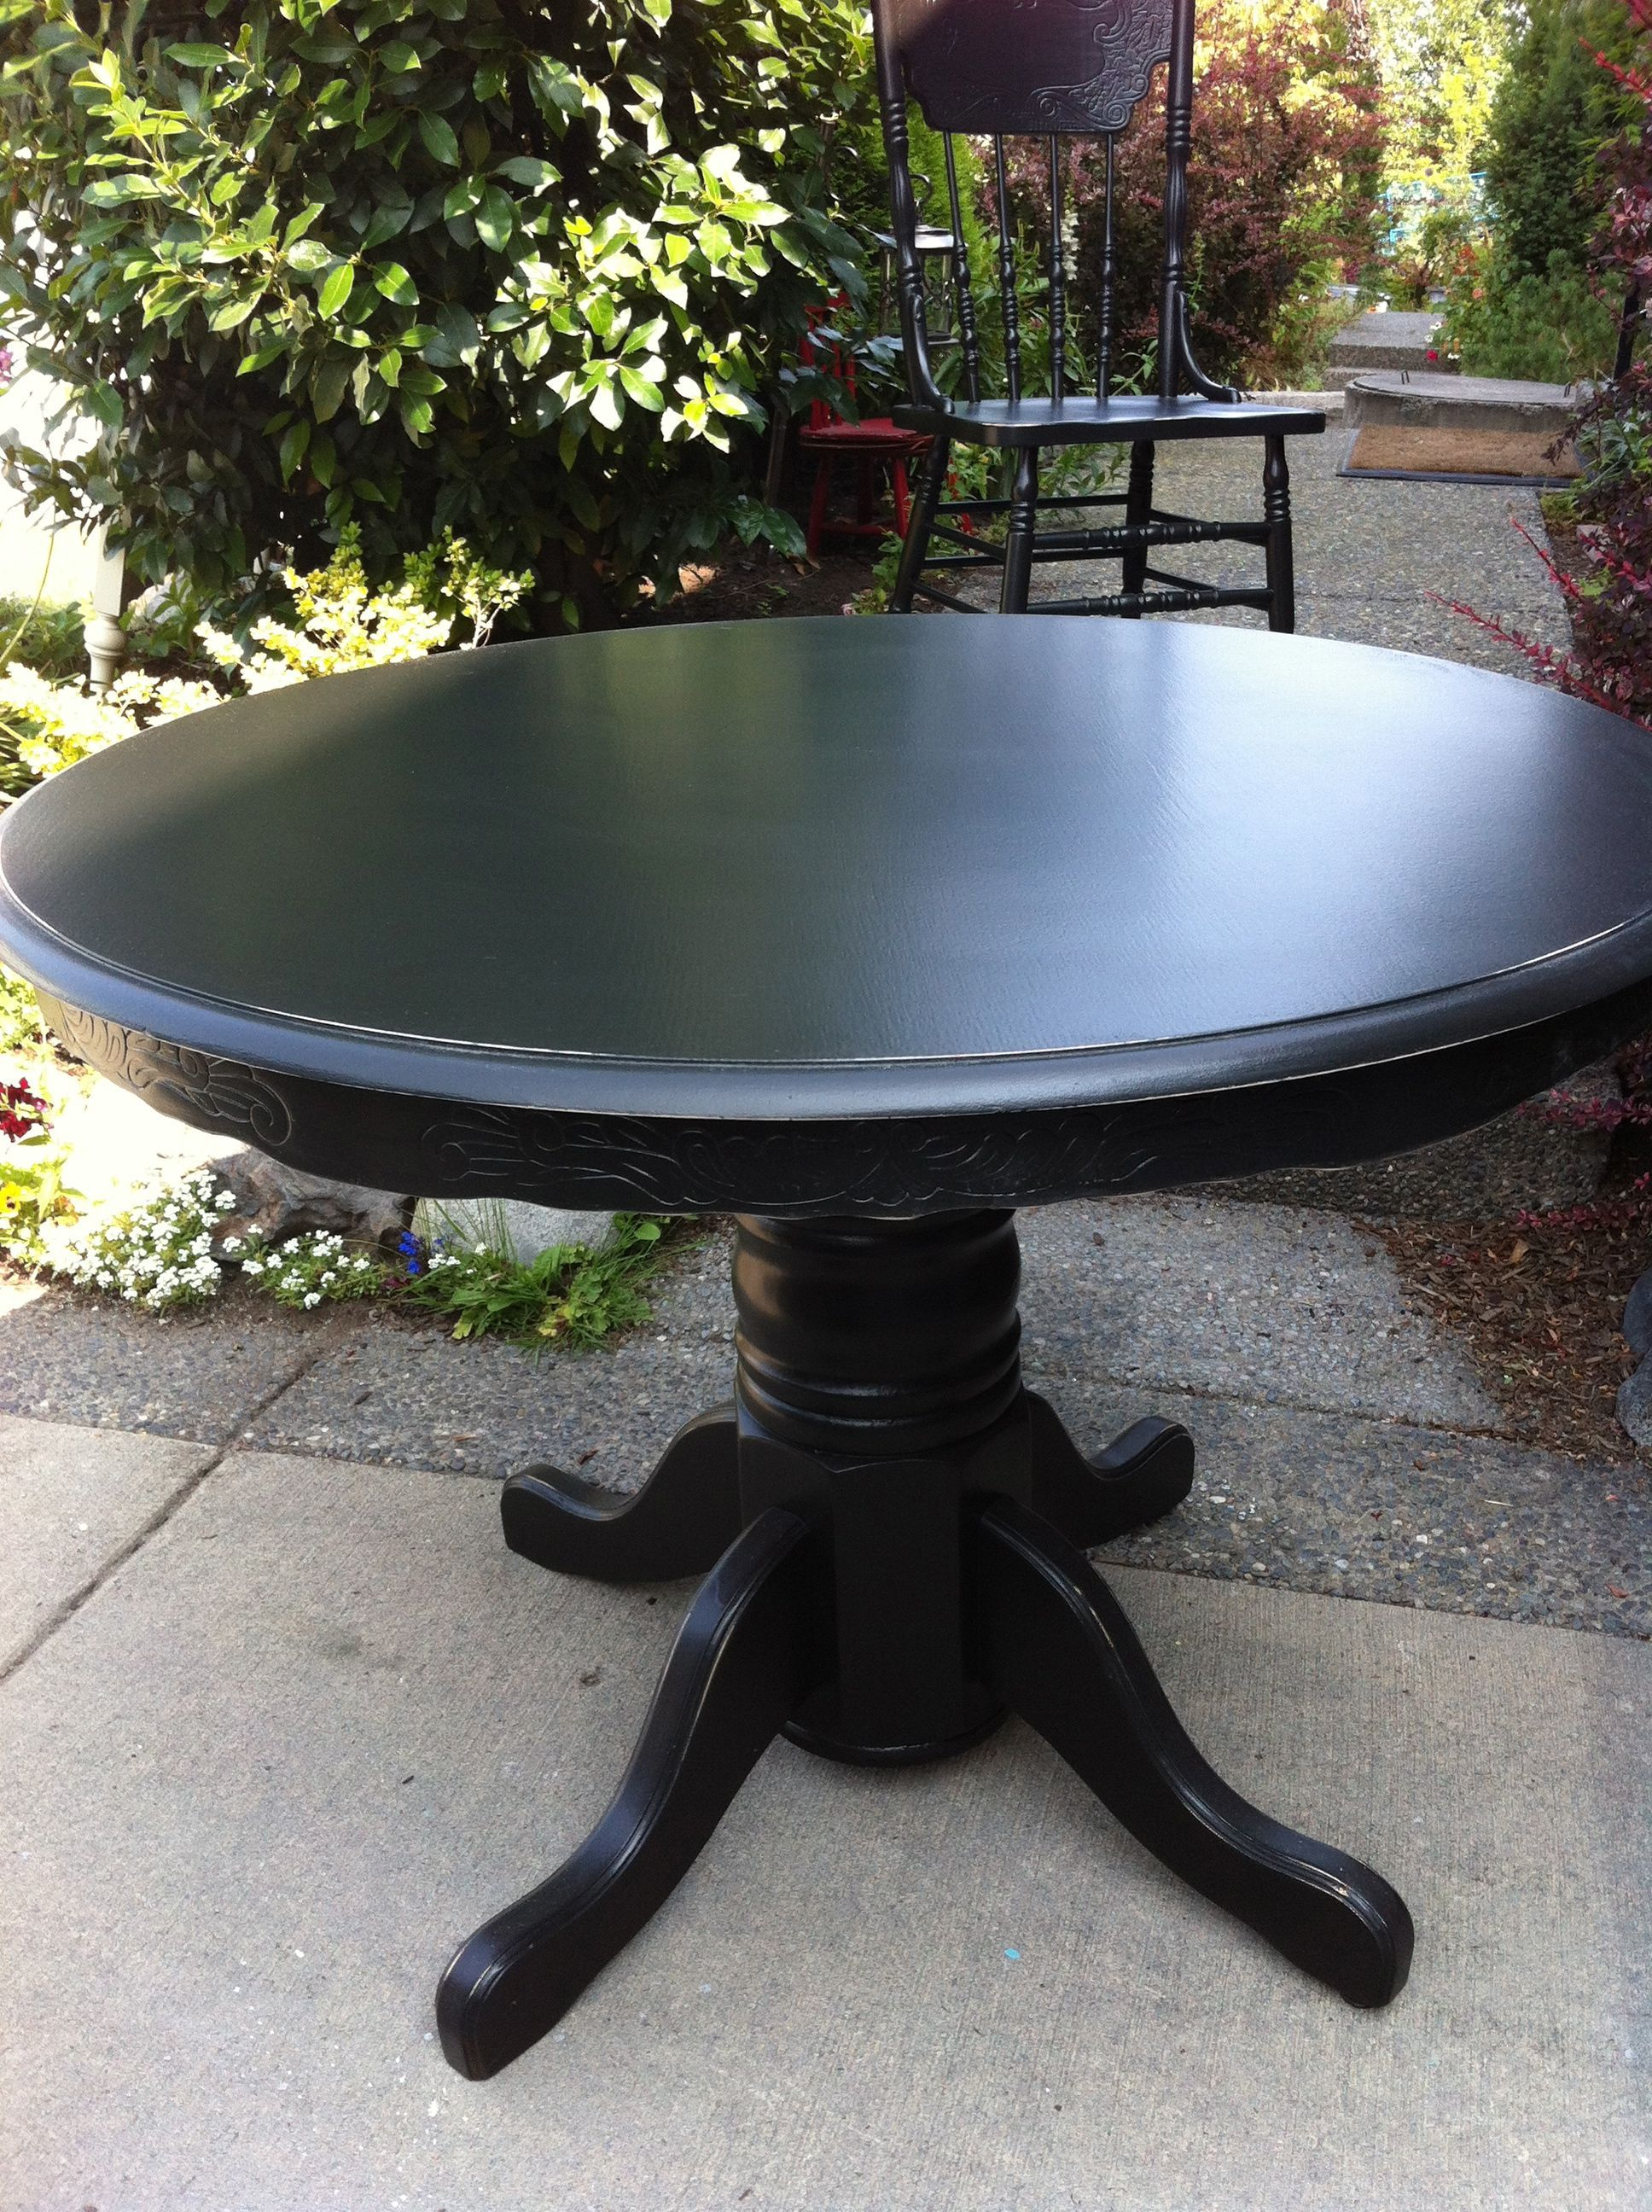 Antique Oak Table and 4 matching pressback chairs Refinished in ...